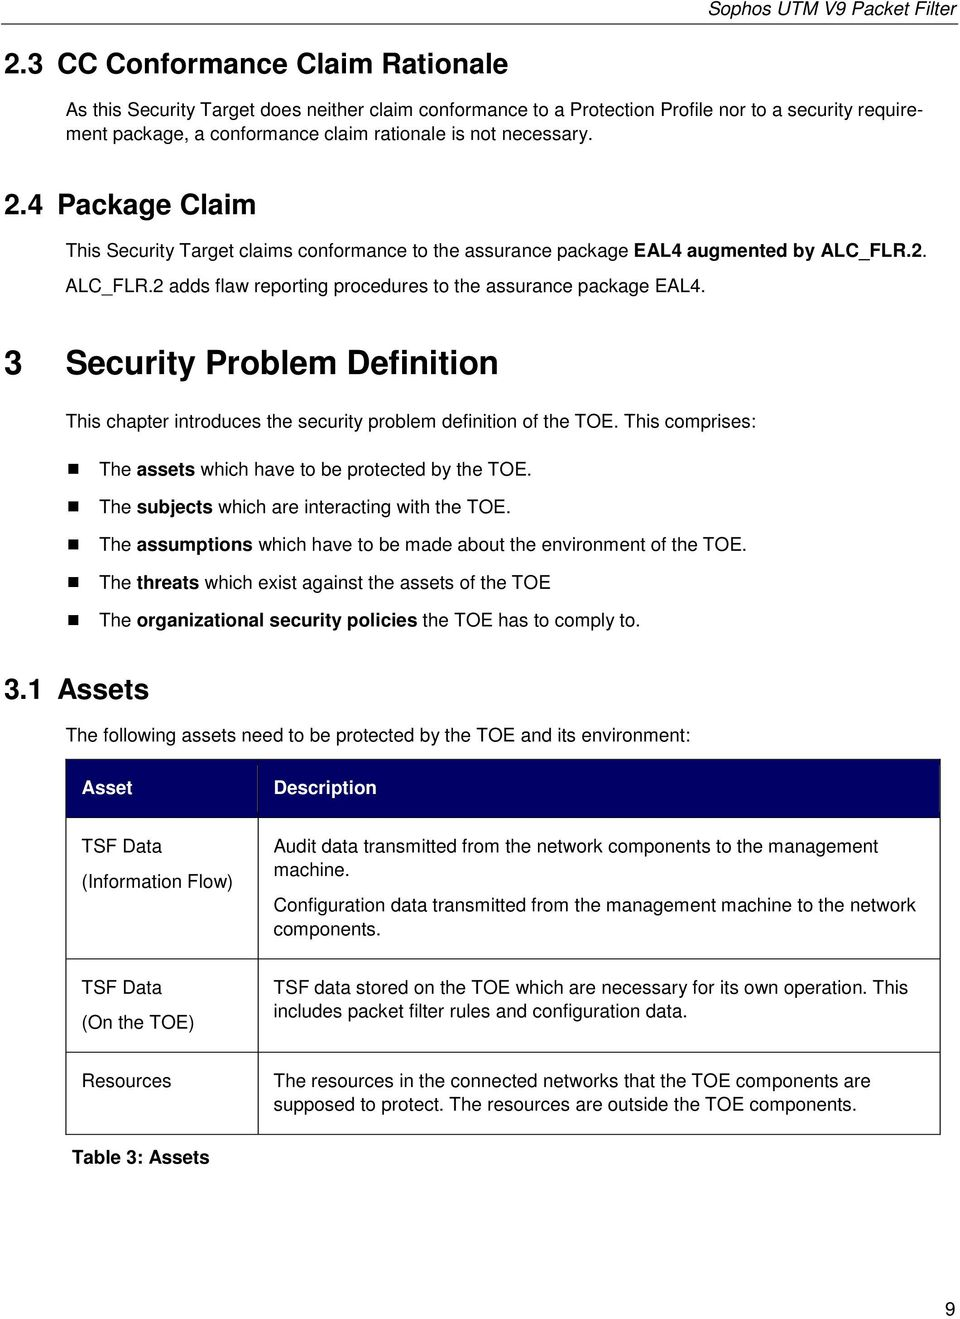 2.4 Package Claim This Security Target claims conformance to the assurance package EAL4 augmented by ALC_FLR.2. ALC_FLR.2 adds flaw reporting procedures to the assurance package EAL4.